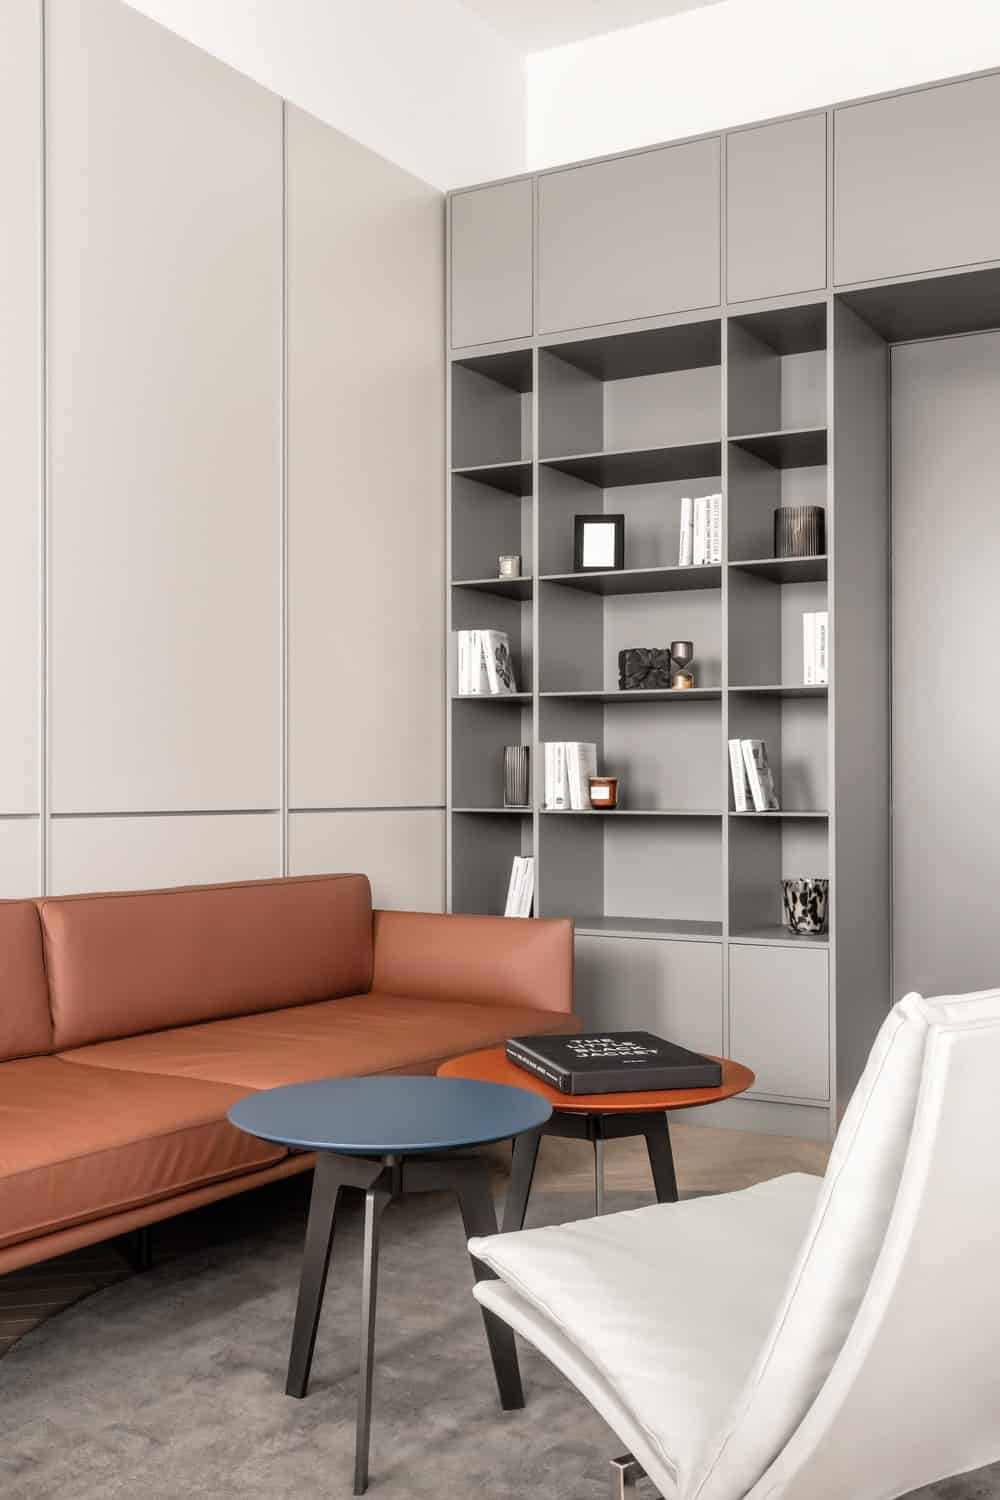 At the far end of the room is a couple of built-in shelves that are used for books and decors flanking the door of the room.